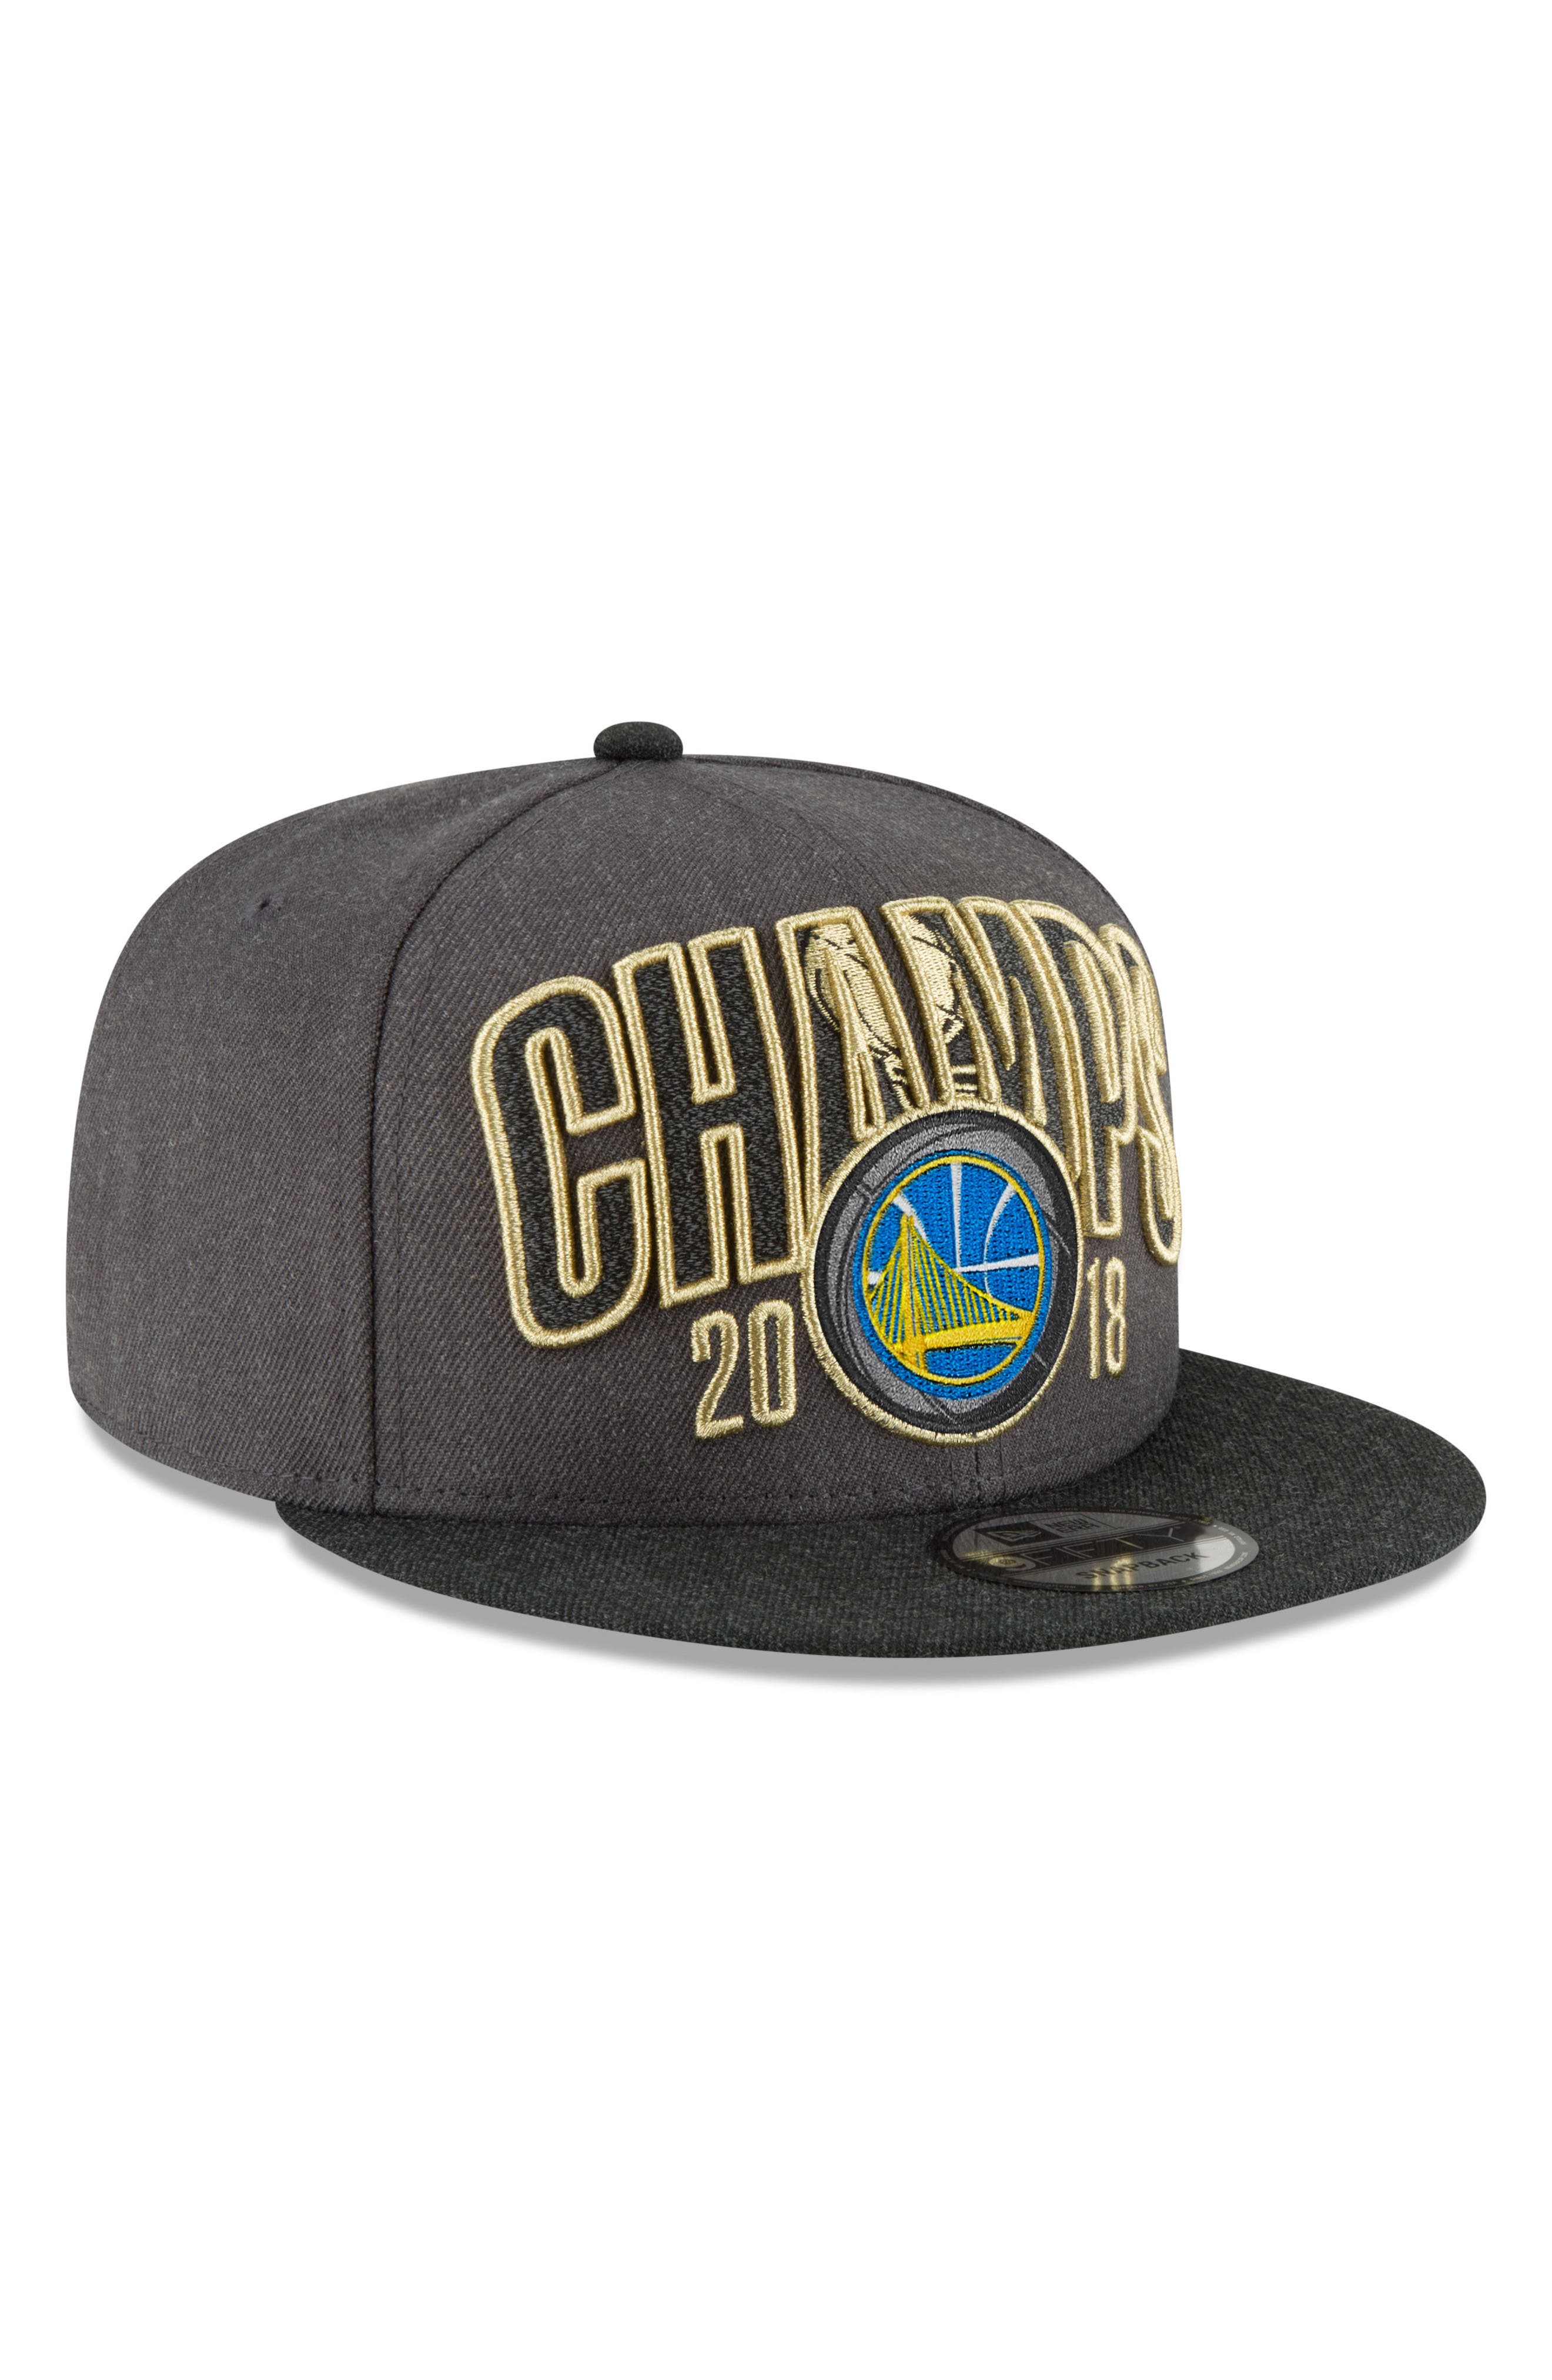 2018 NBA Champions - Golden State Warriors 9Fifty Snapback Cap,                         Main,                         color, Golden State Warriors